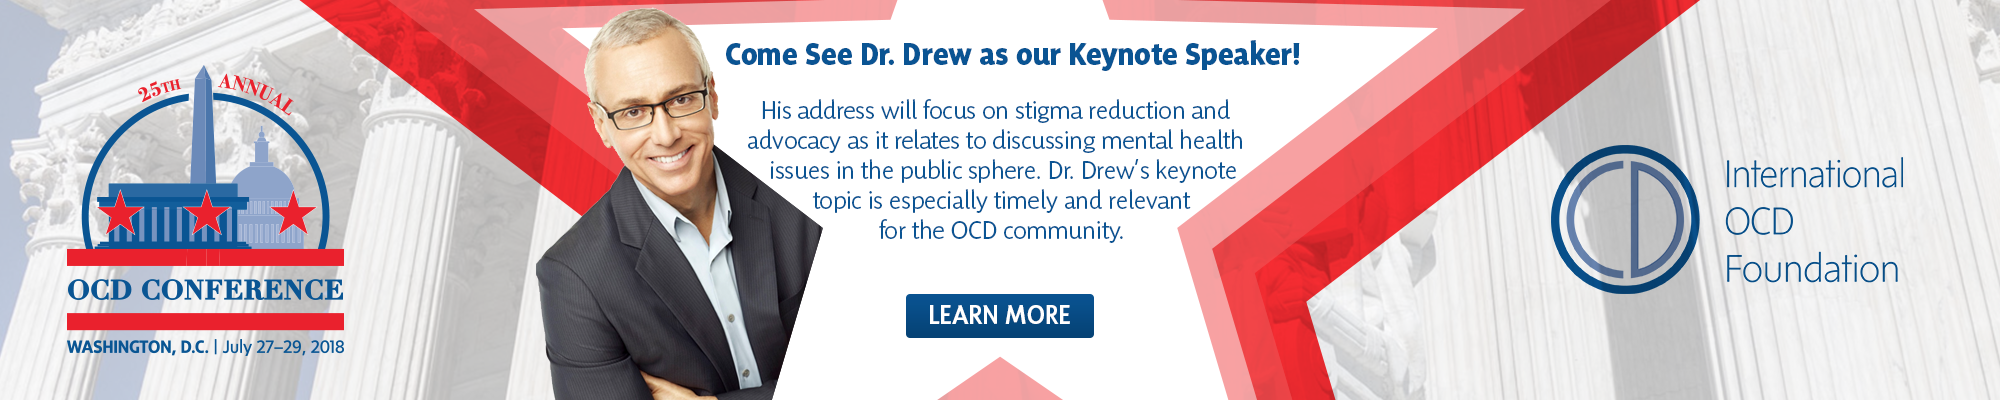 Dr. Drew is this year's Annual OCD Conference's Keynote Speakr